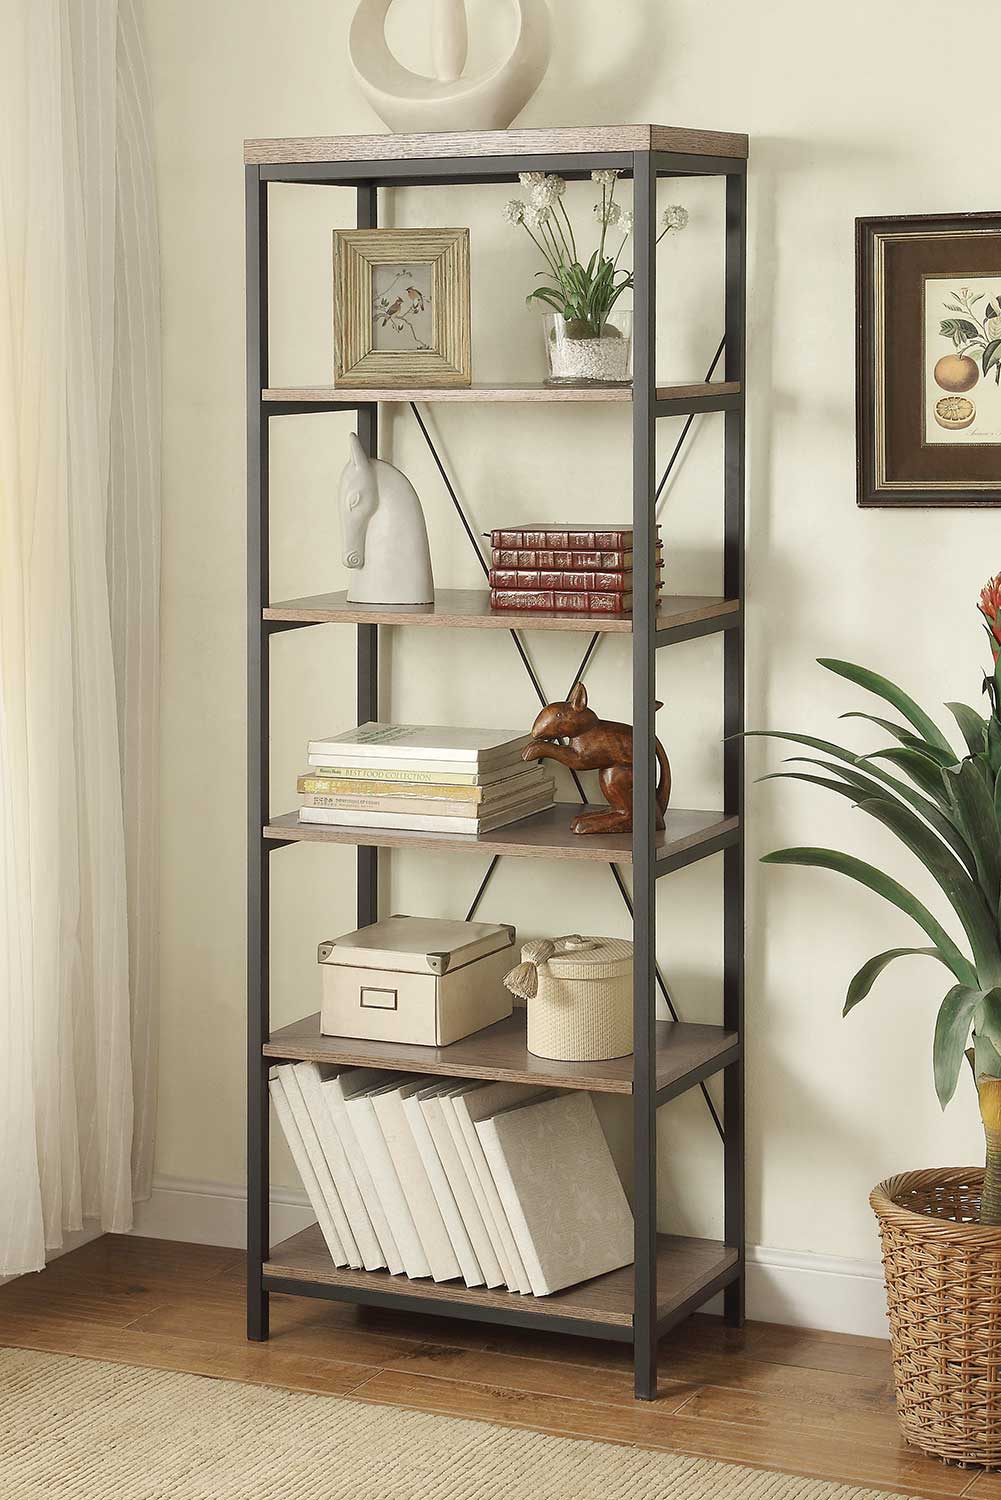 Homelegance Daria 26in Bookcase - Weathered Wood Top with Metal Framing